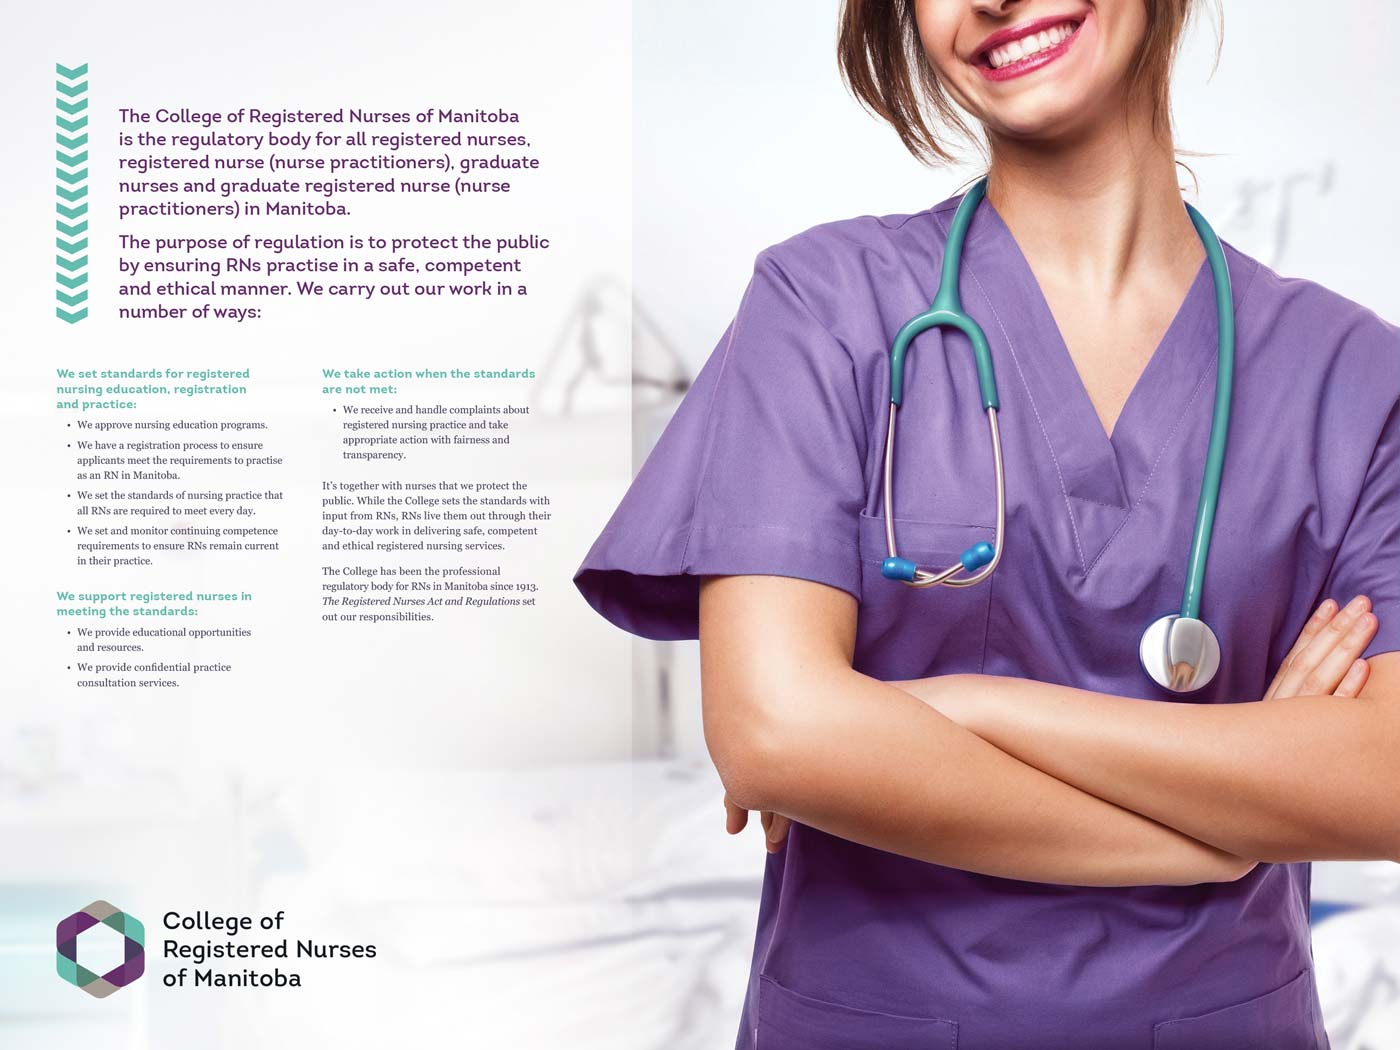 College of Registered Nurses of Manitoba annual report sample page